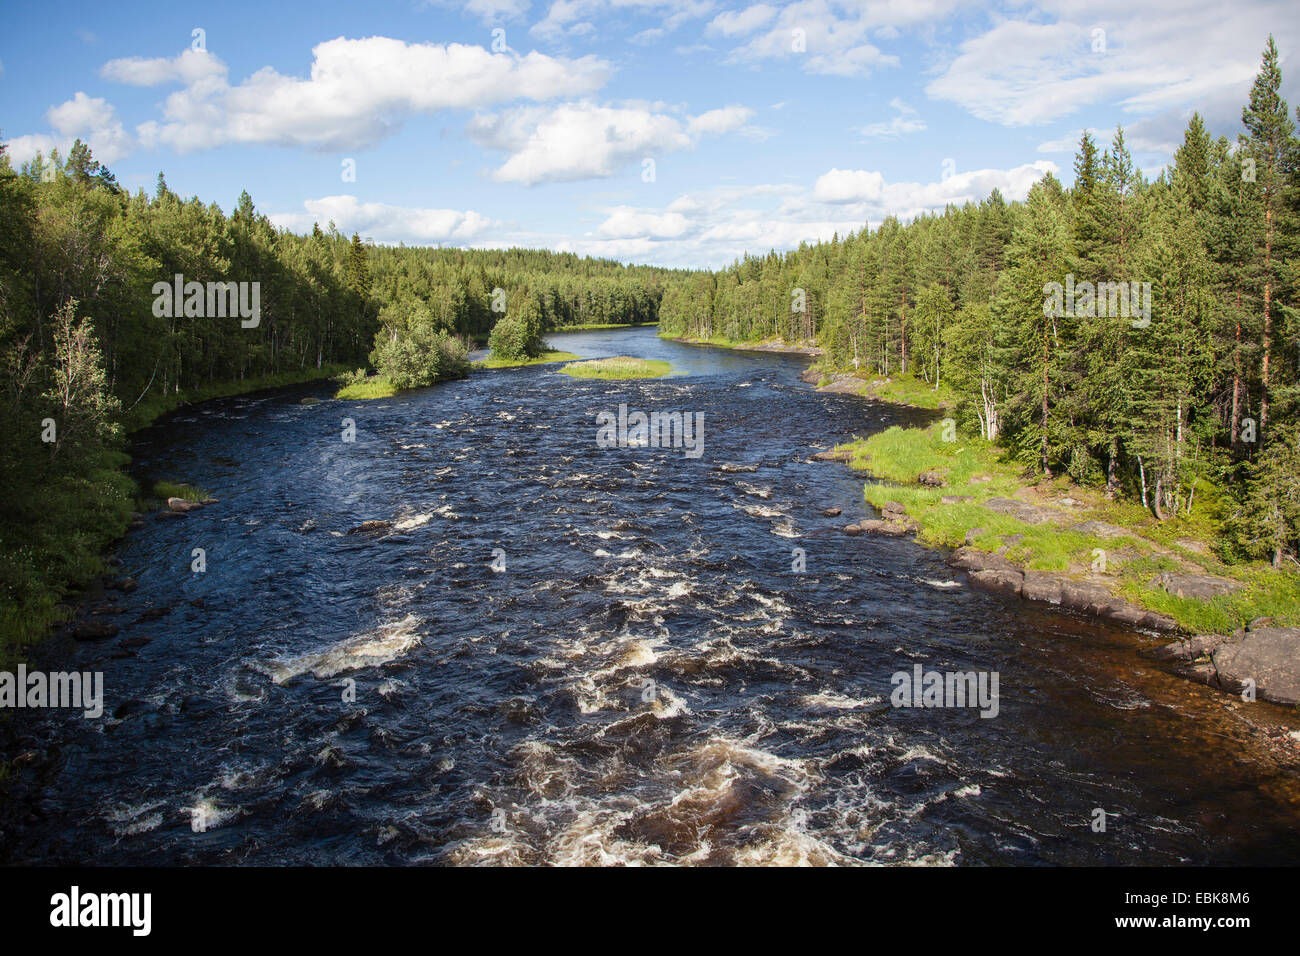 river with auburn water running through a primeval pine forest, Russia, Karelien, Keret River - Stock Image